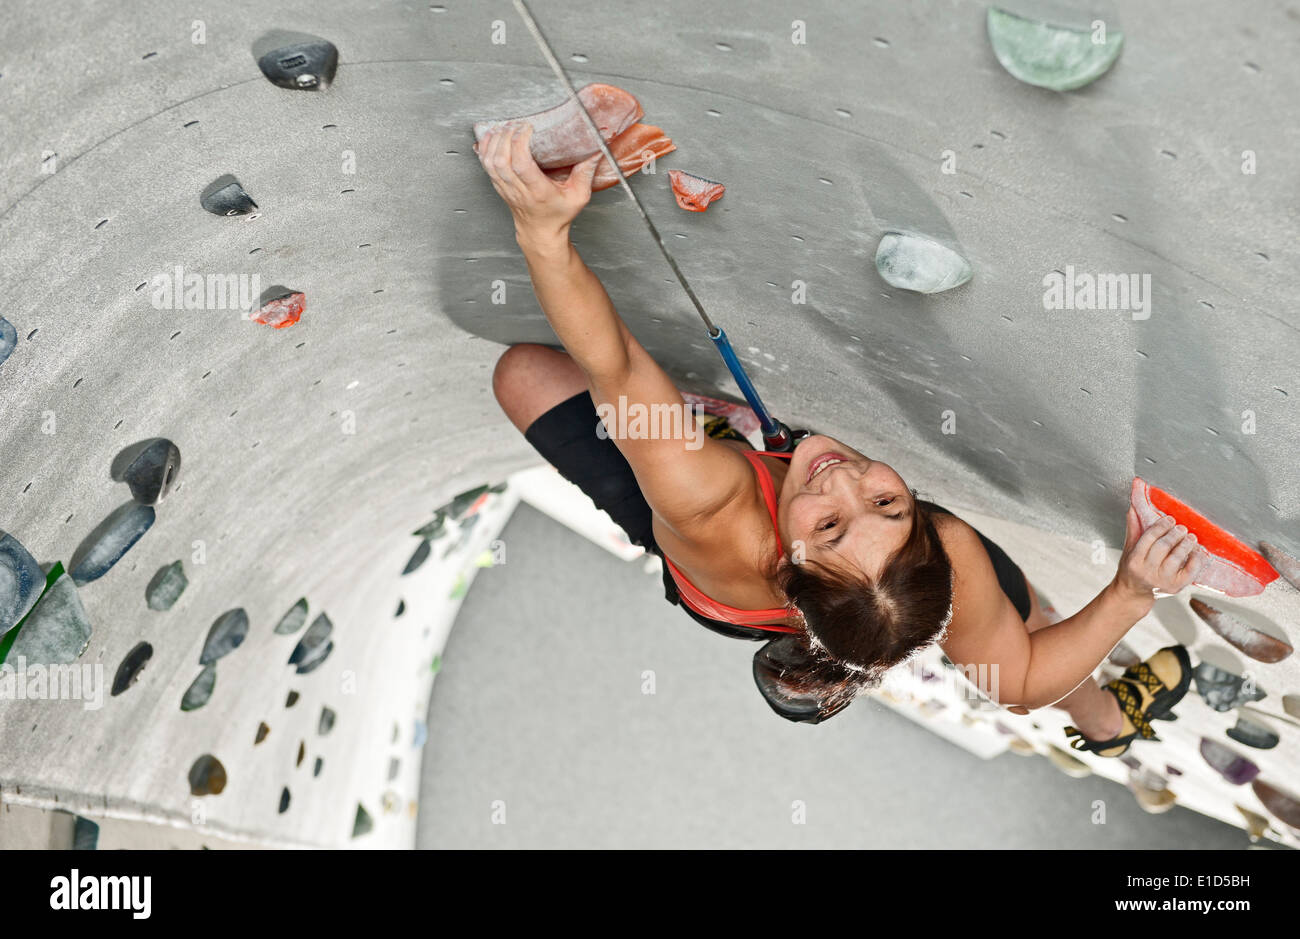 Woman climbing at indoor climbing centre - Stock Image